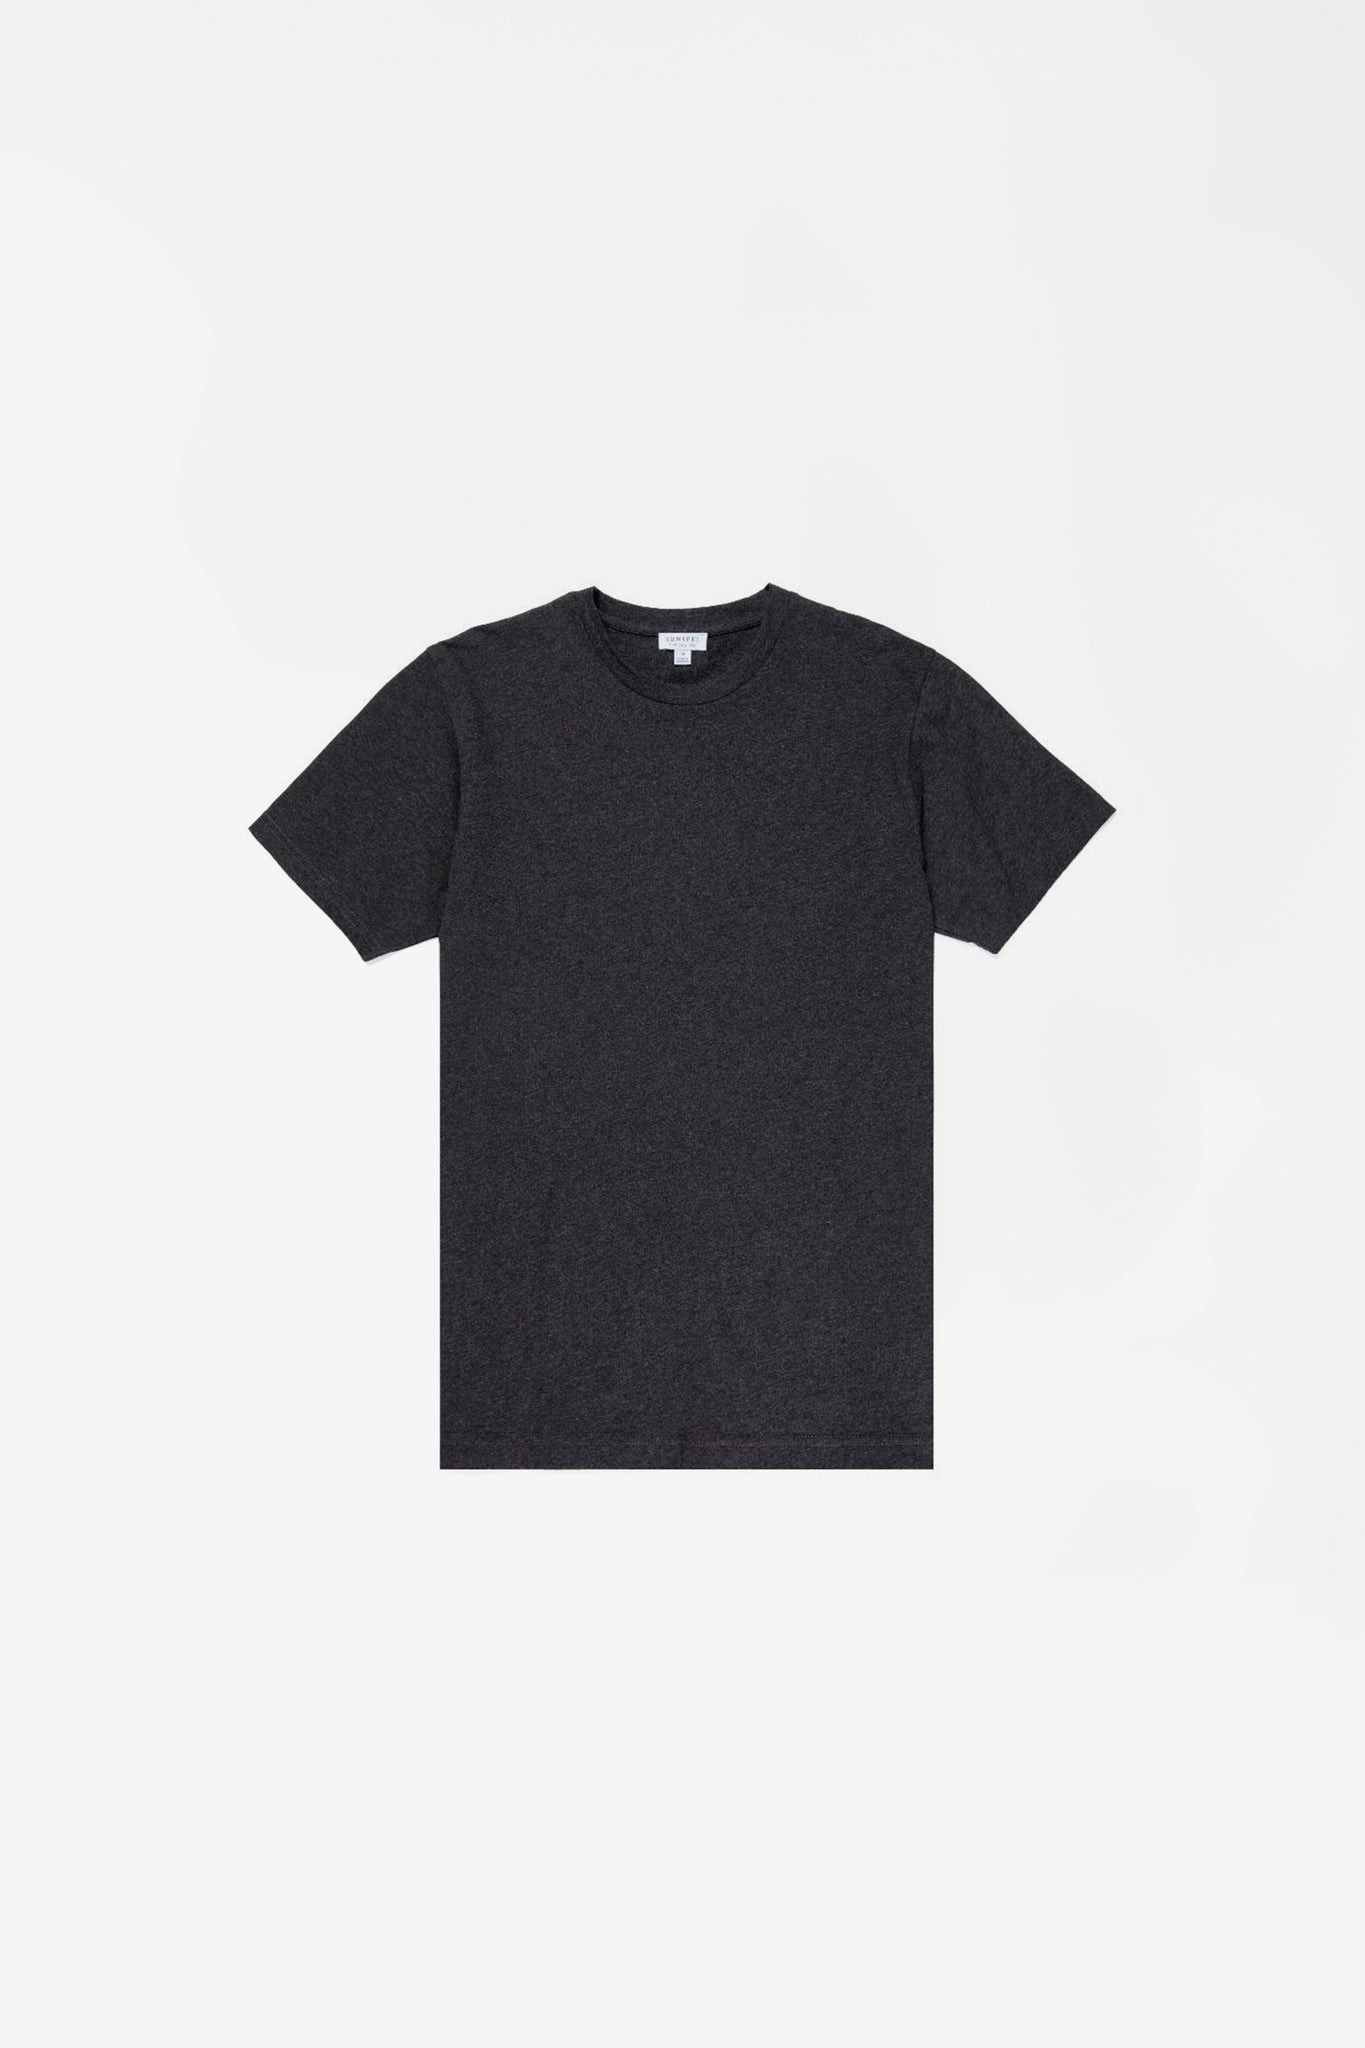 Organic cotton riviera t-shirt charcoal melange